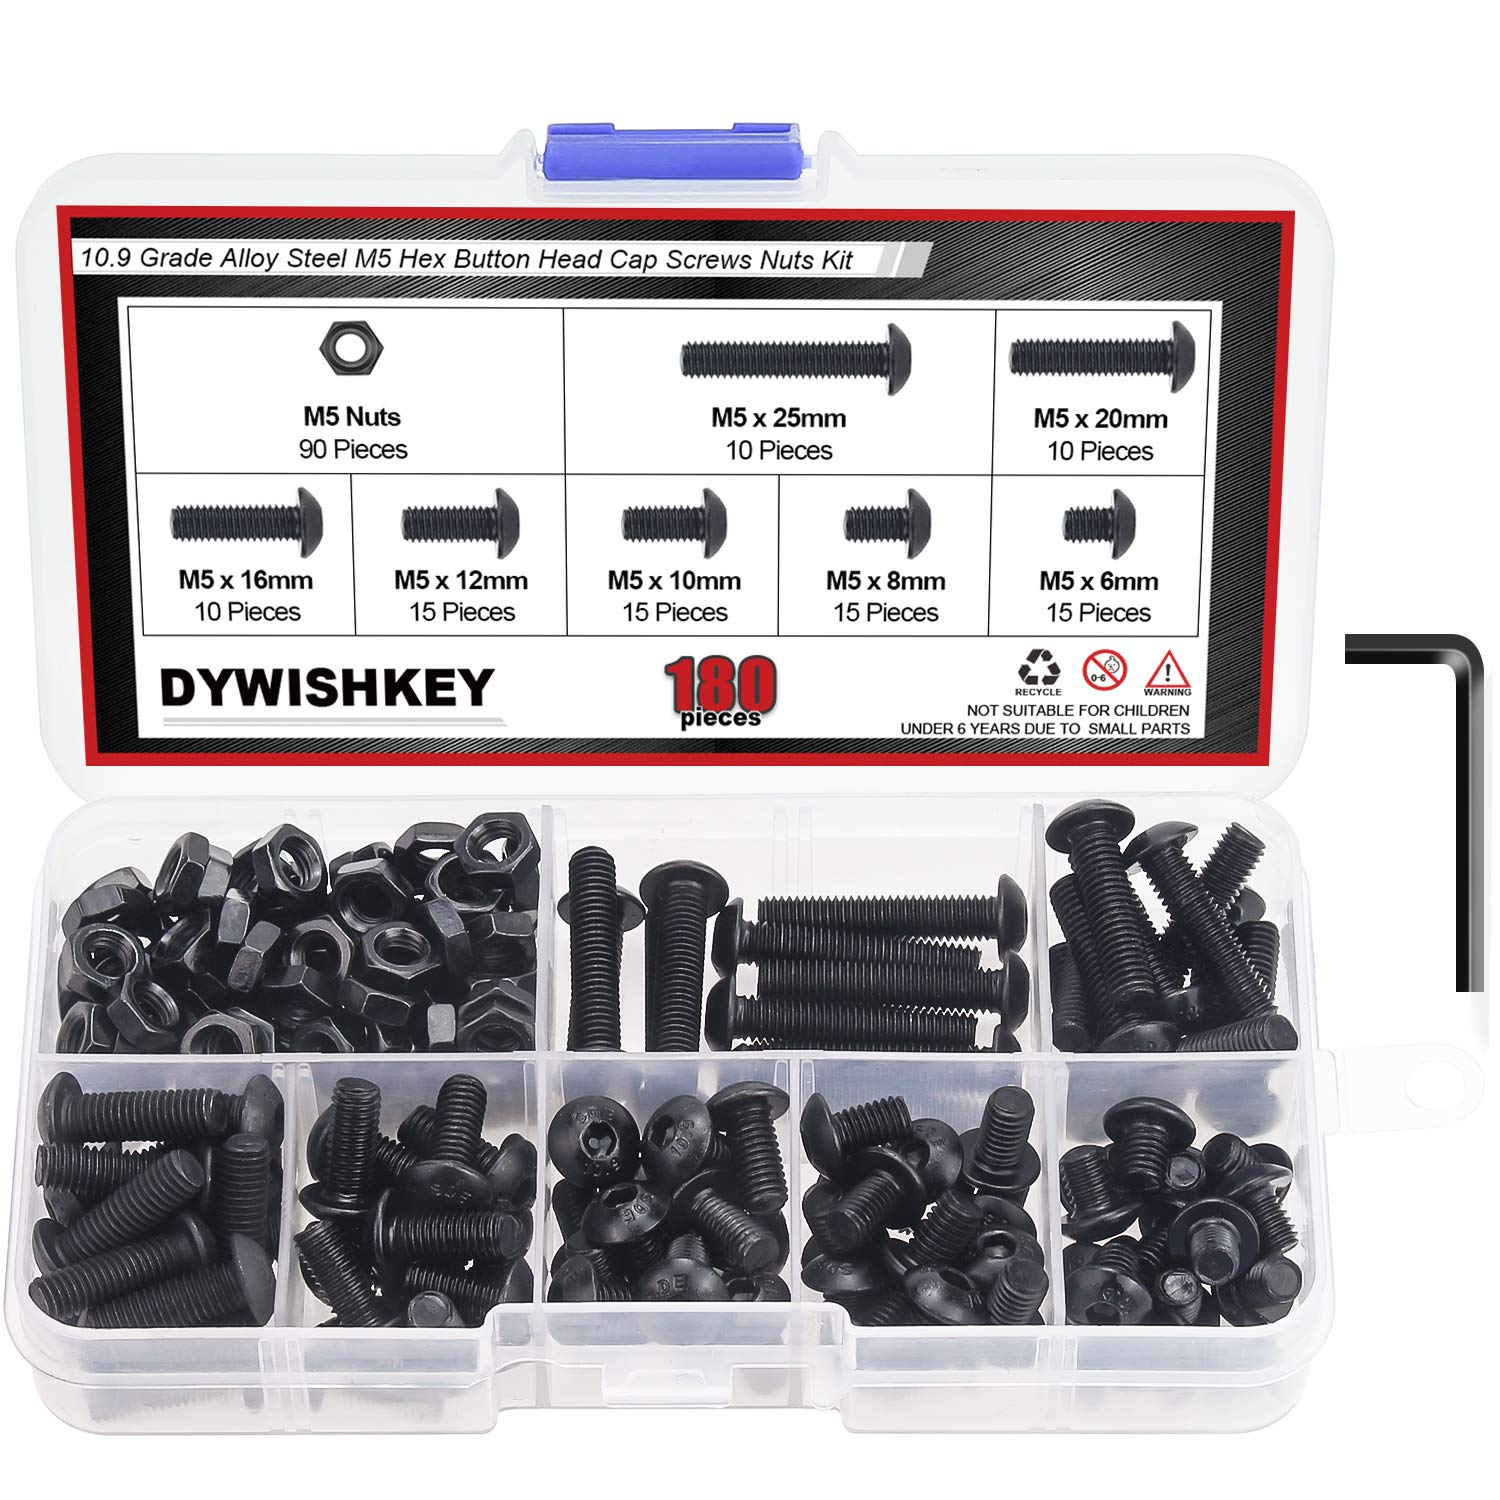 DYWISHKEY 180 Pieces M5 x 6mm/8mm/10mm/12mm/16mm/20mm/25mm, 10.9 Grade Alloy Steel Hex Button Head Cap Bolts Nuts Kit with Hex Wrench